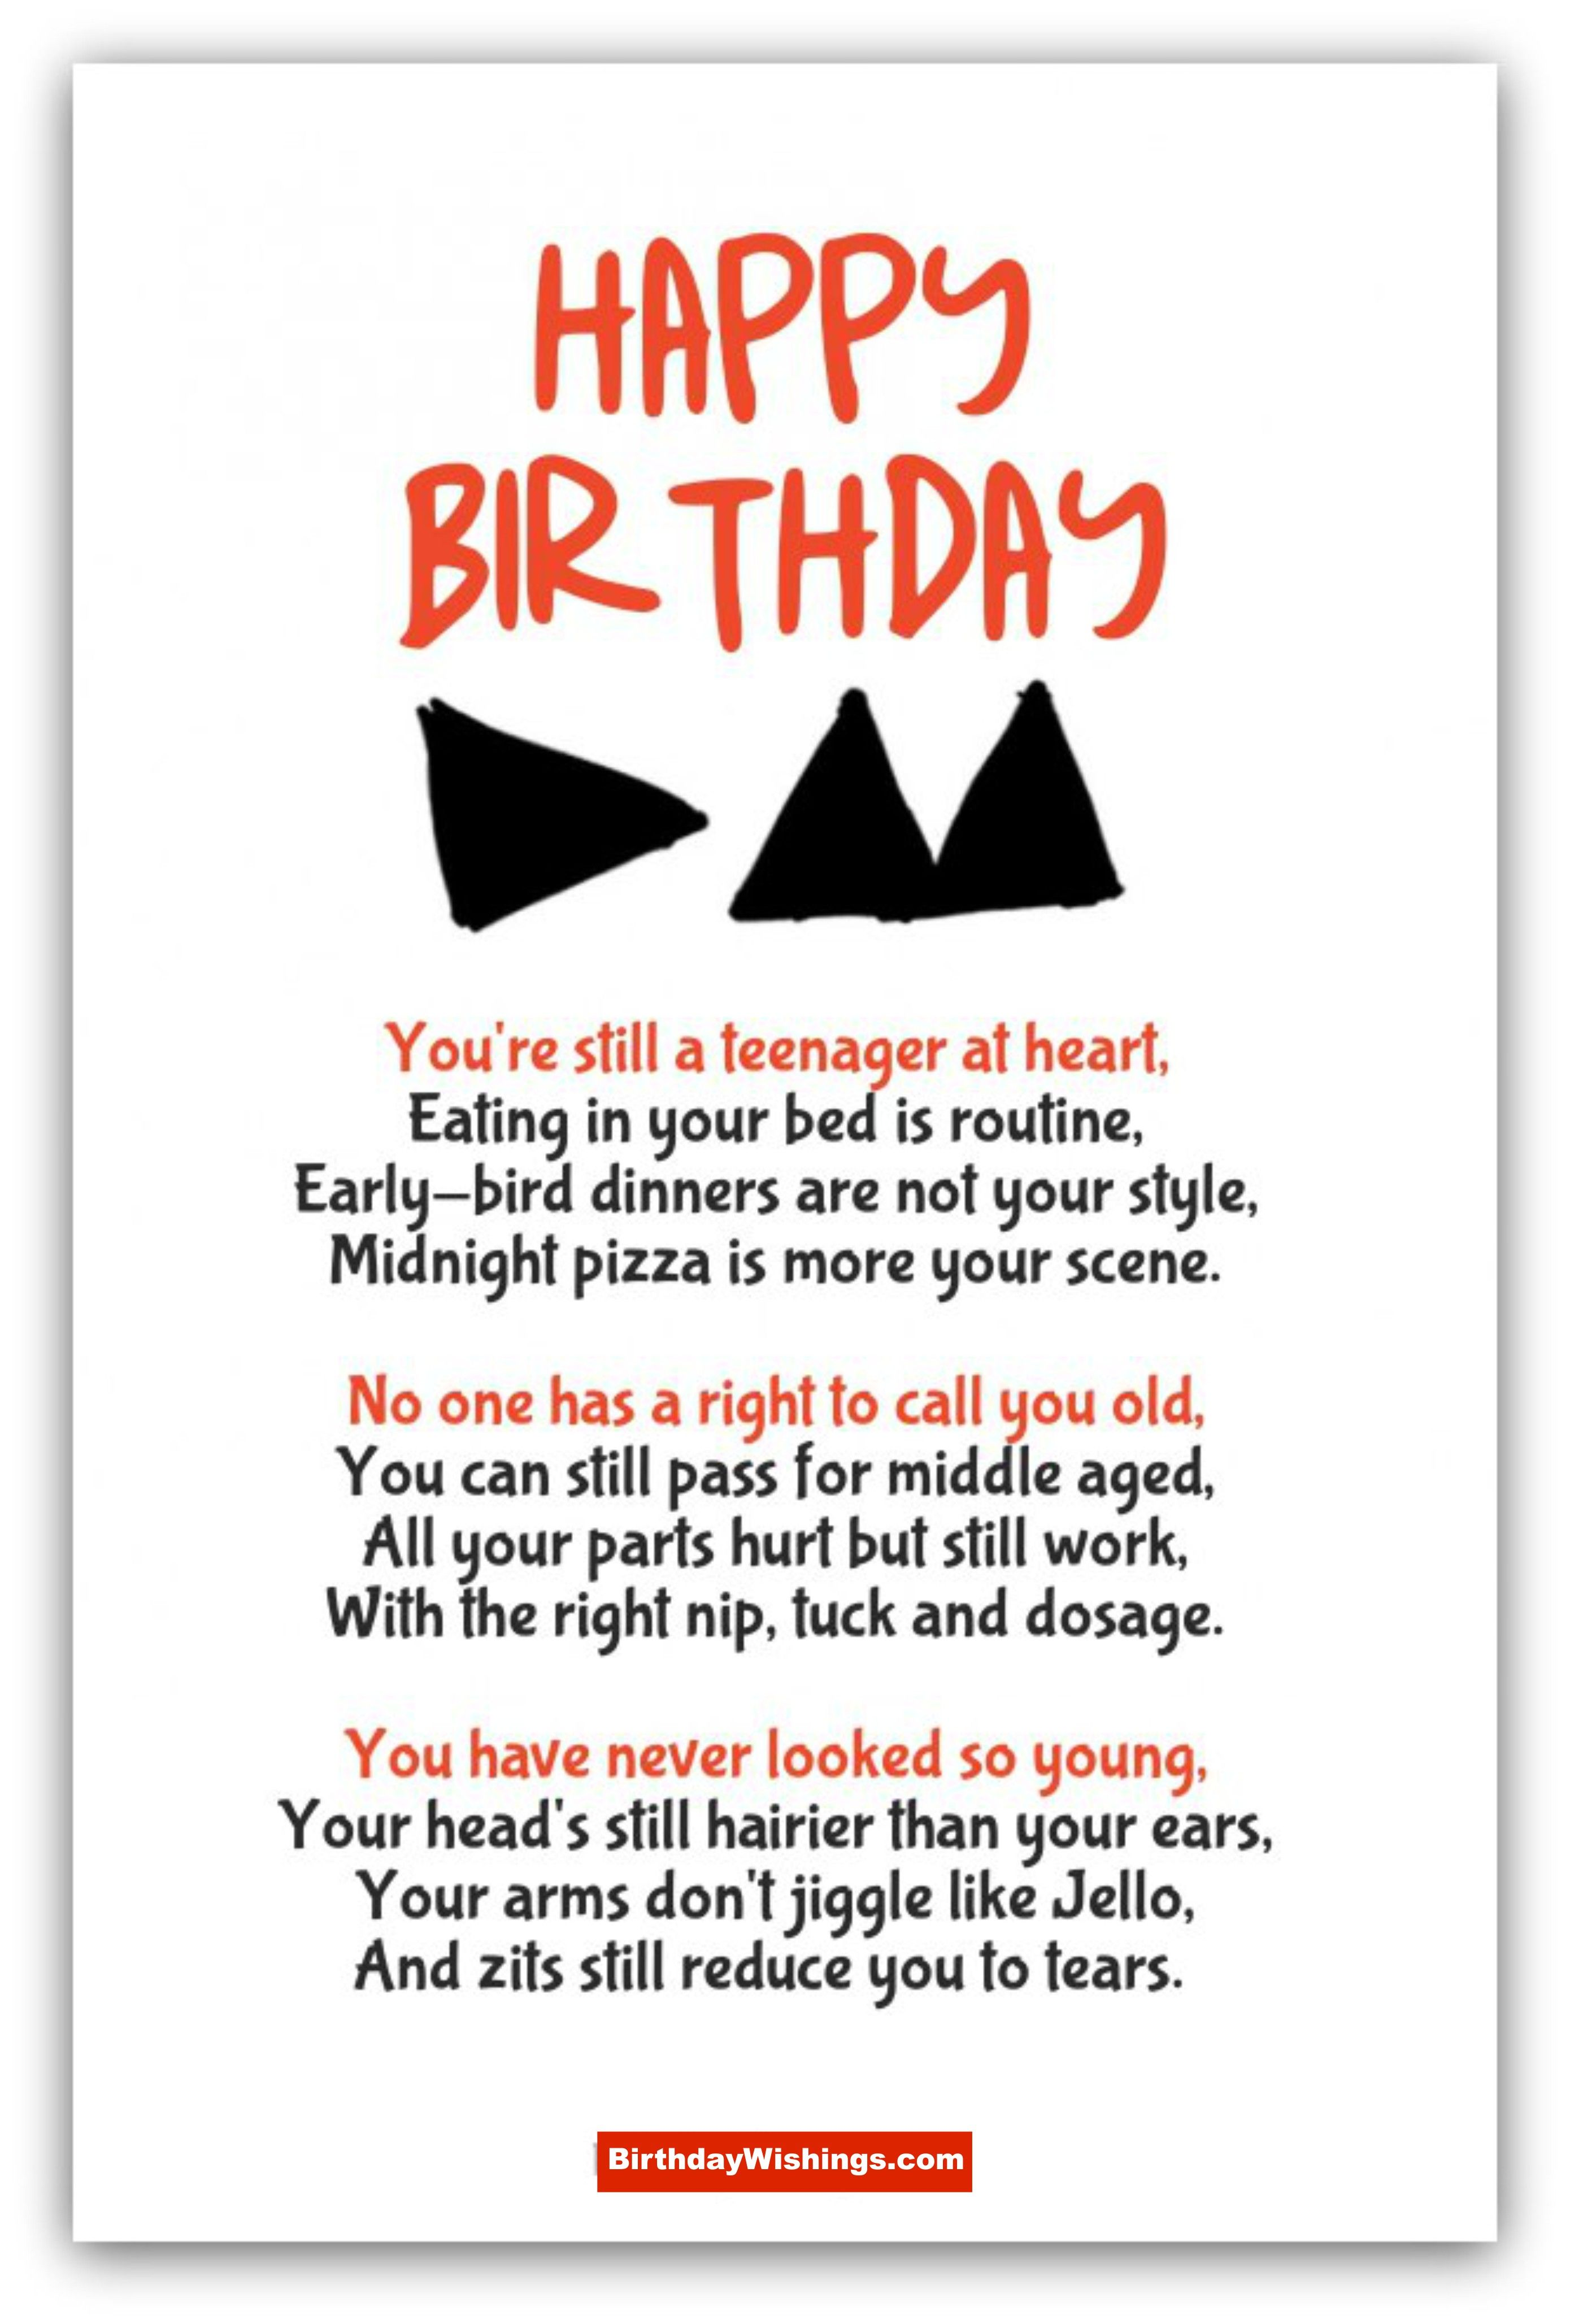 Pin by Happy Birthday Wishes, Cards A on Happy Birthday